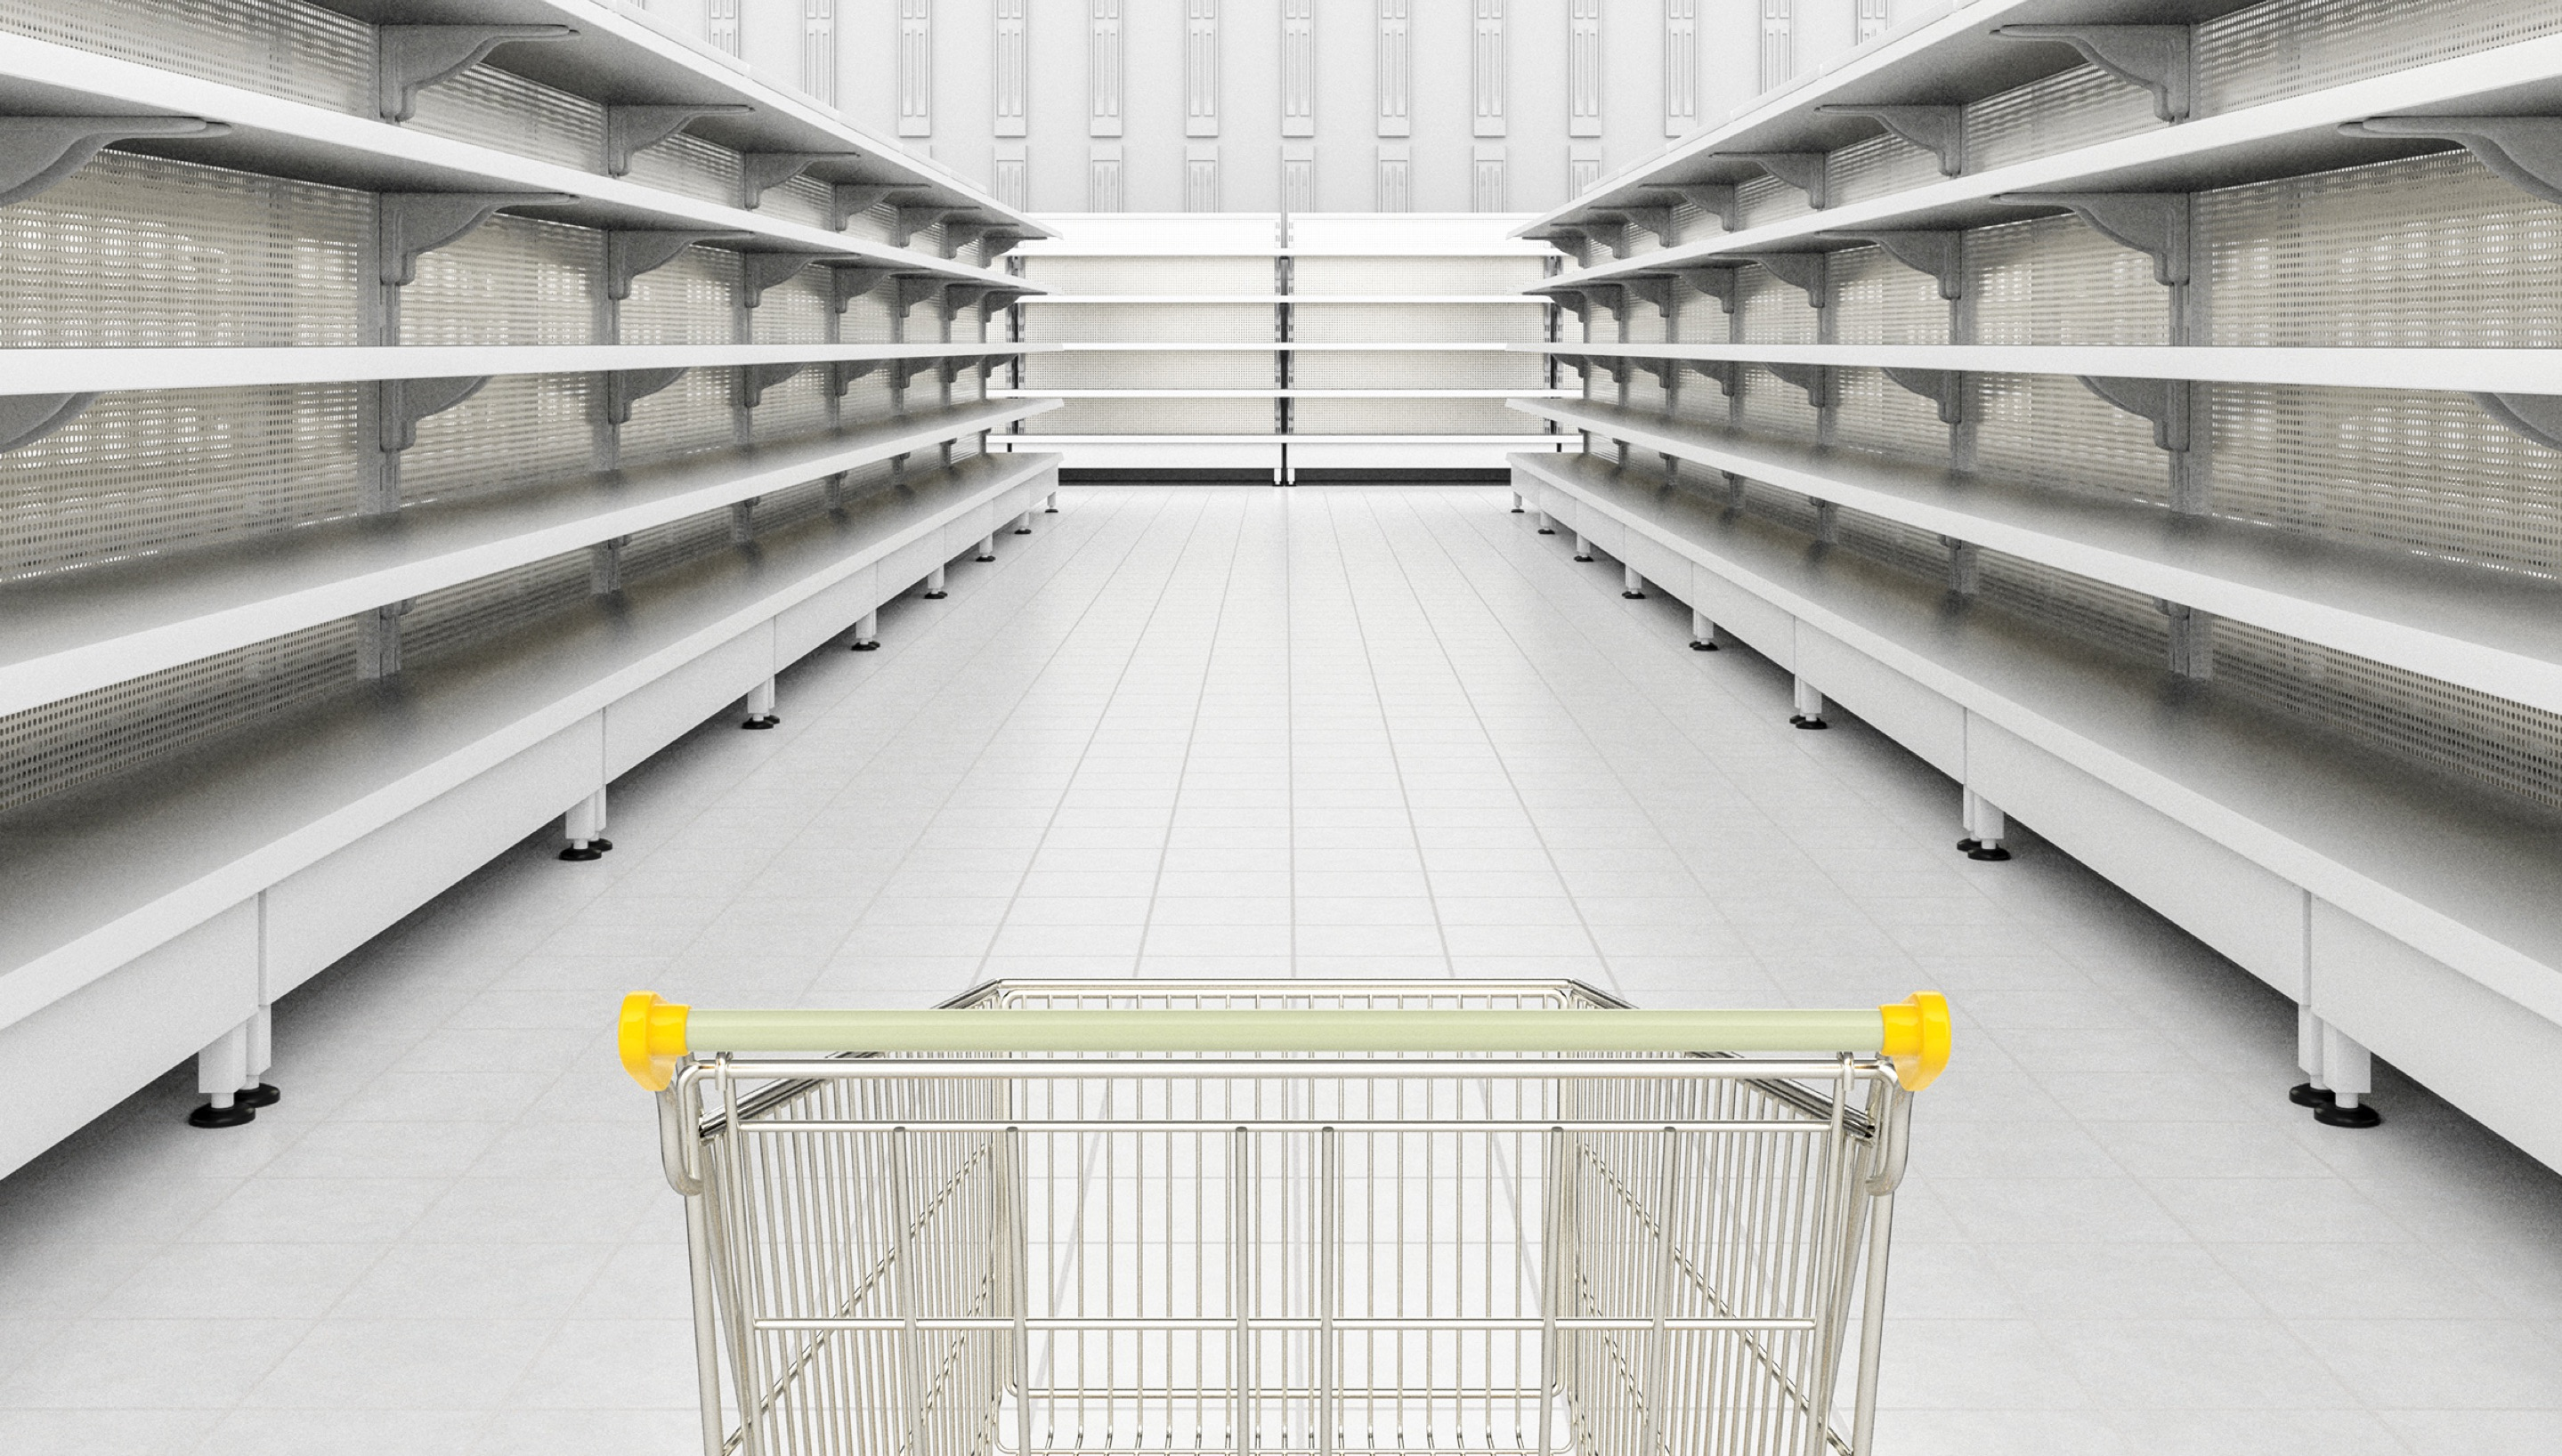 an empty shopping cart in an empty store